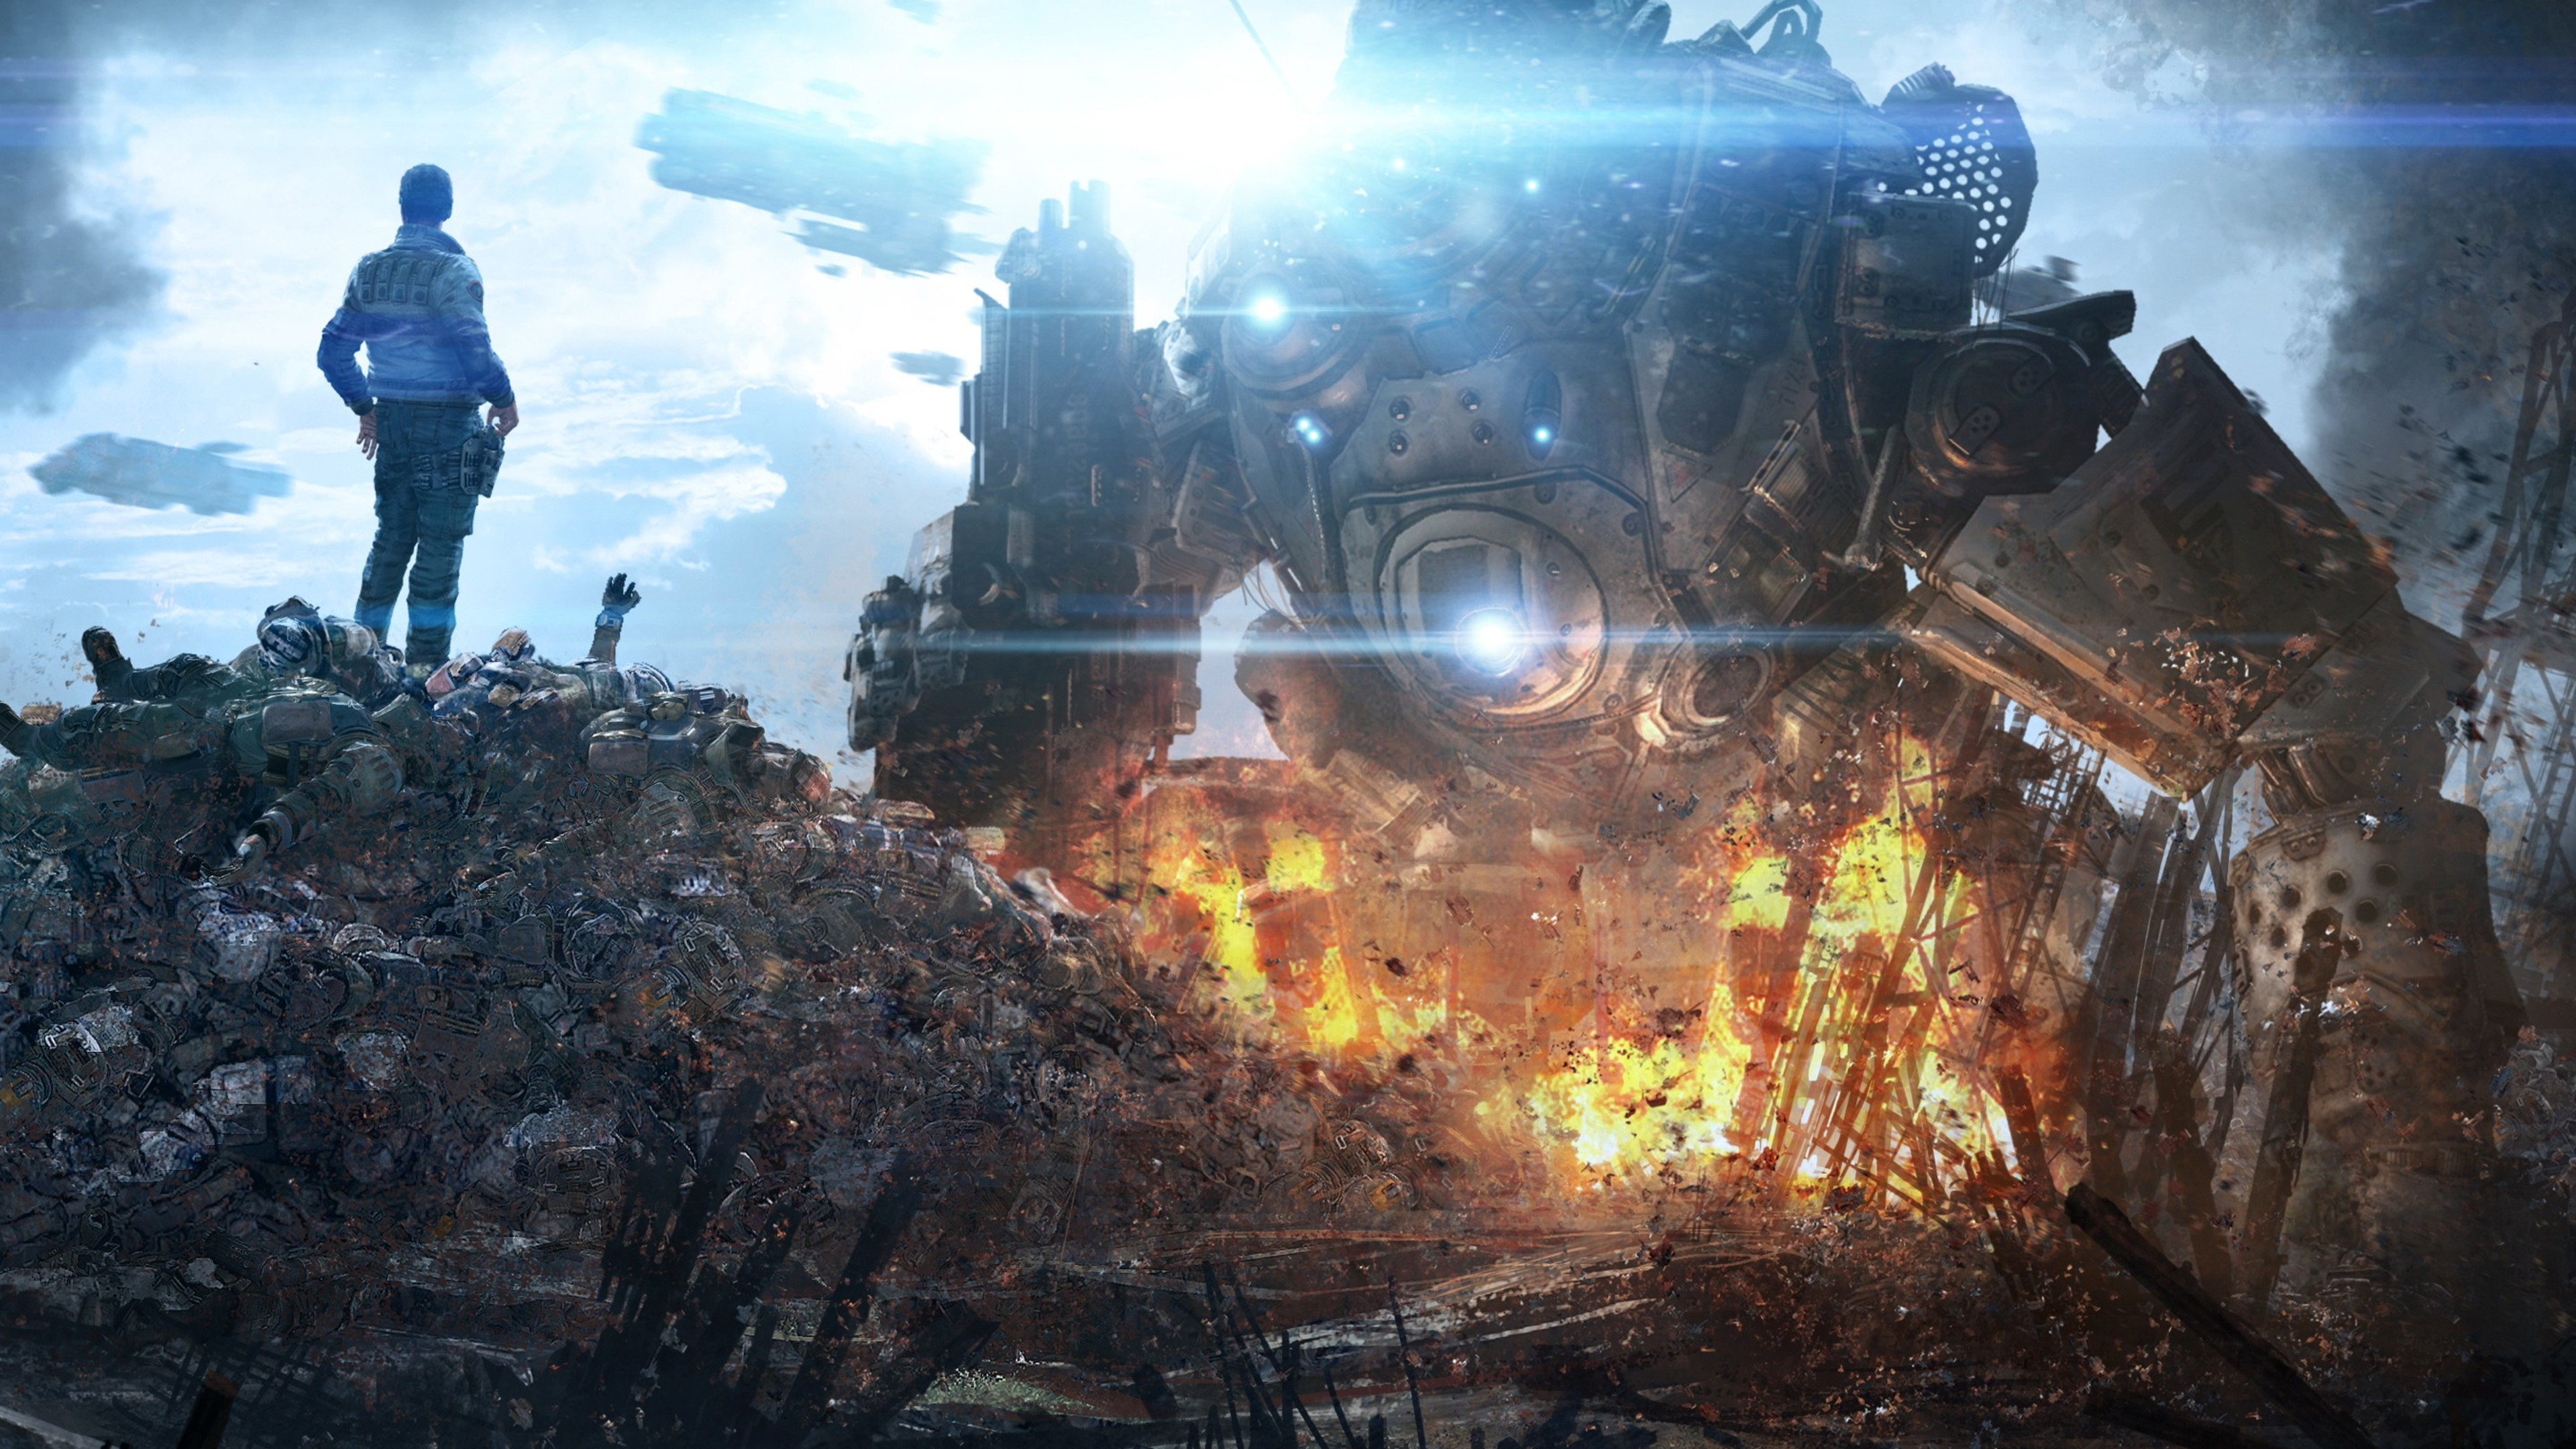 titanfall game 2016 1535967358 - Titanfall Game 2016 - titanfall wallpapers, games wallpapers